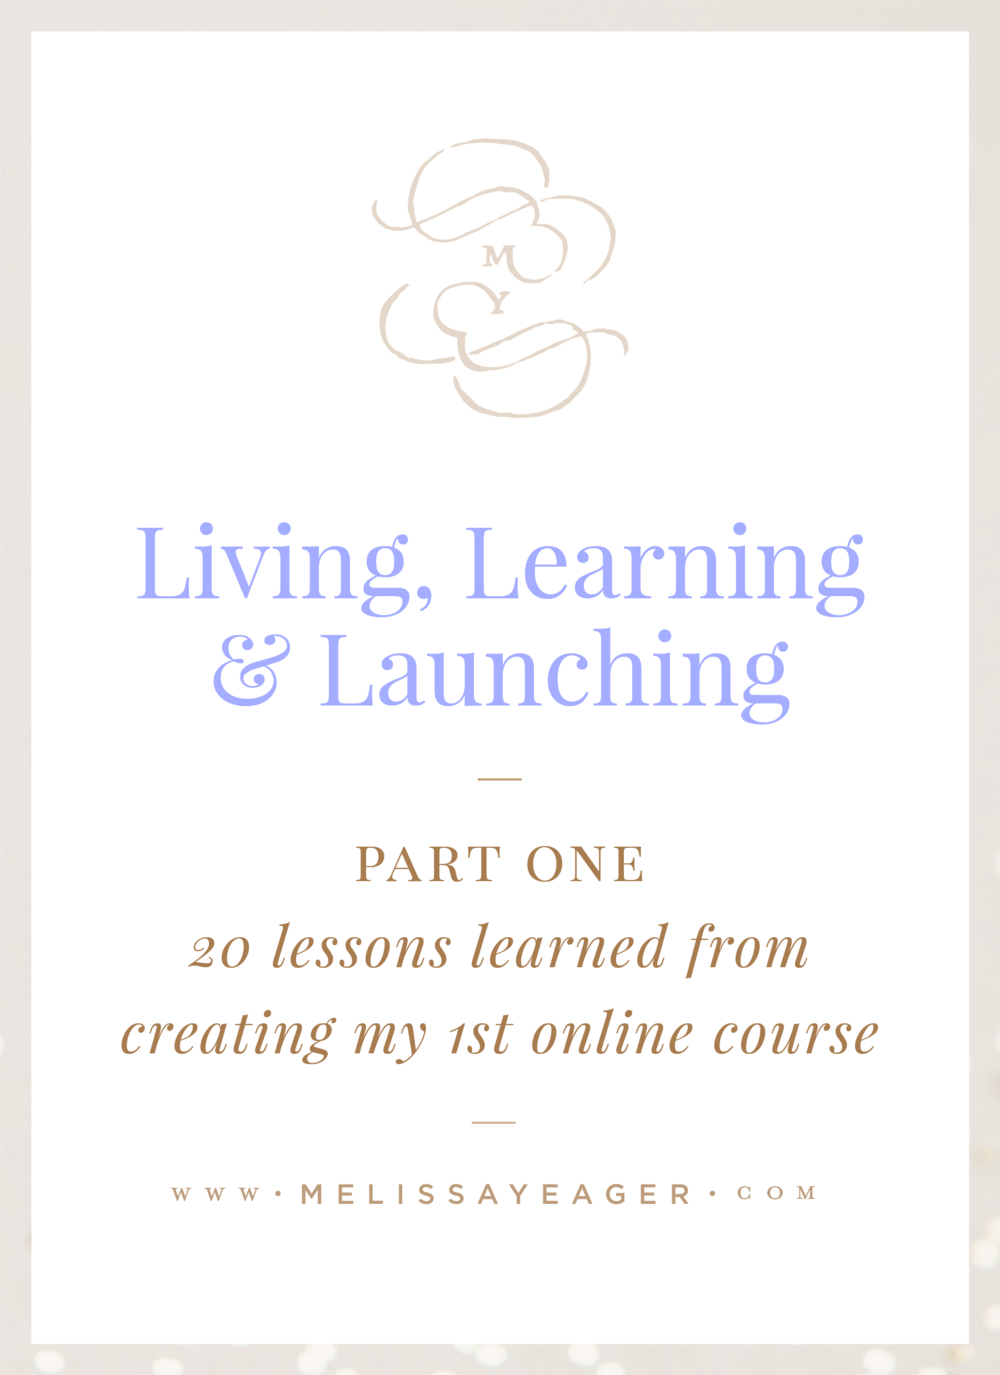 Living, Learning & Launching - 20 lessons learned from creating my 1st online course